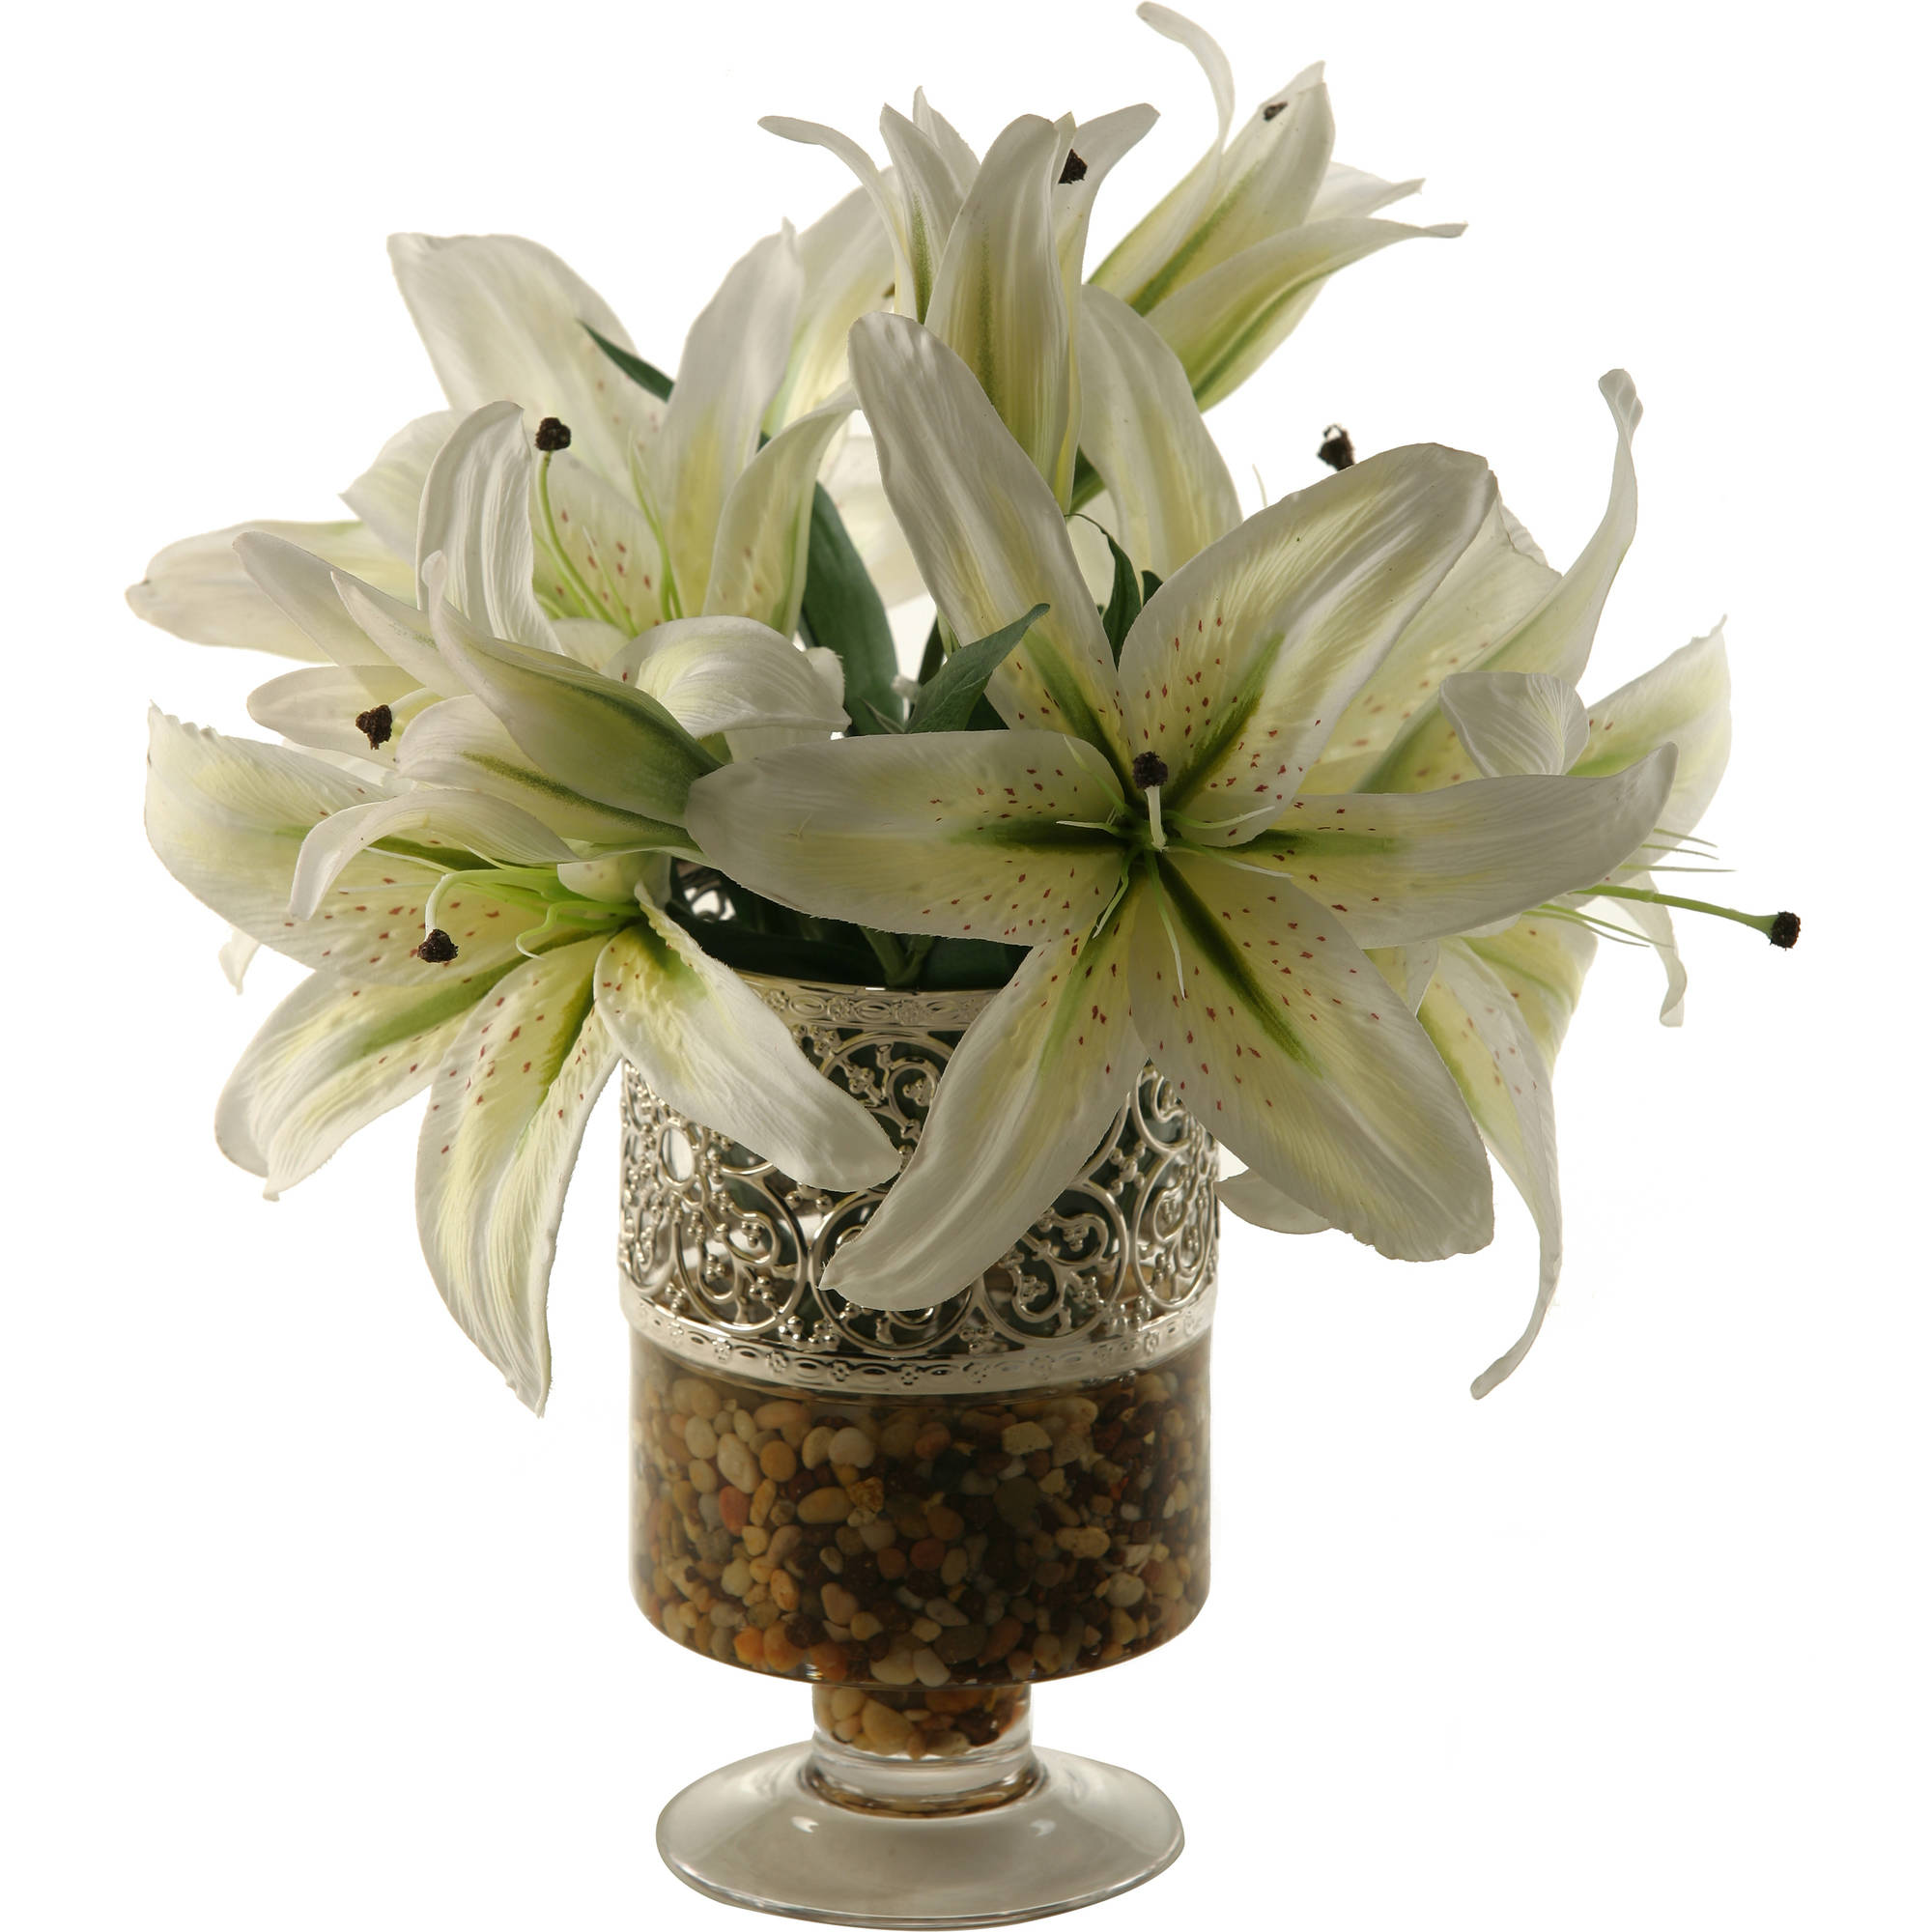 D&W Silks Lilies in Glass Pedestal with Metal Collar